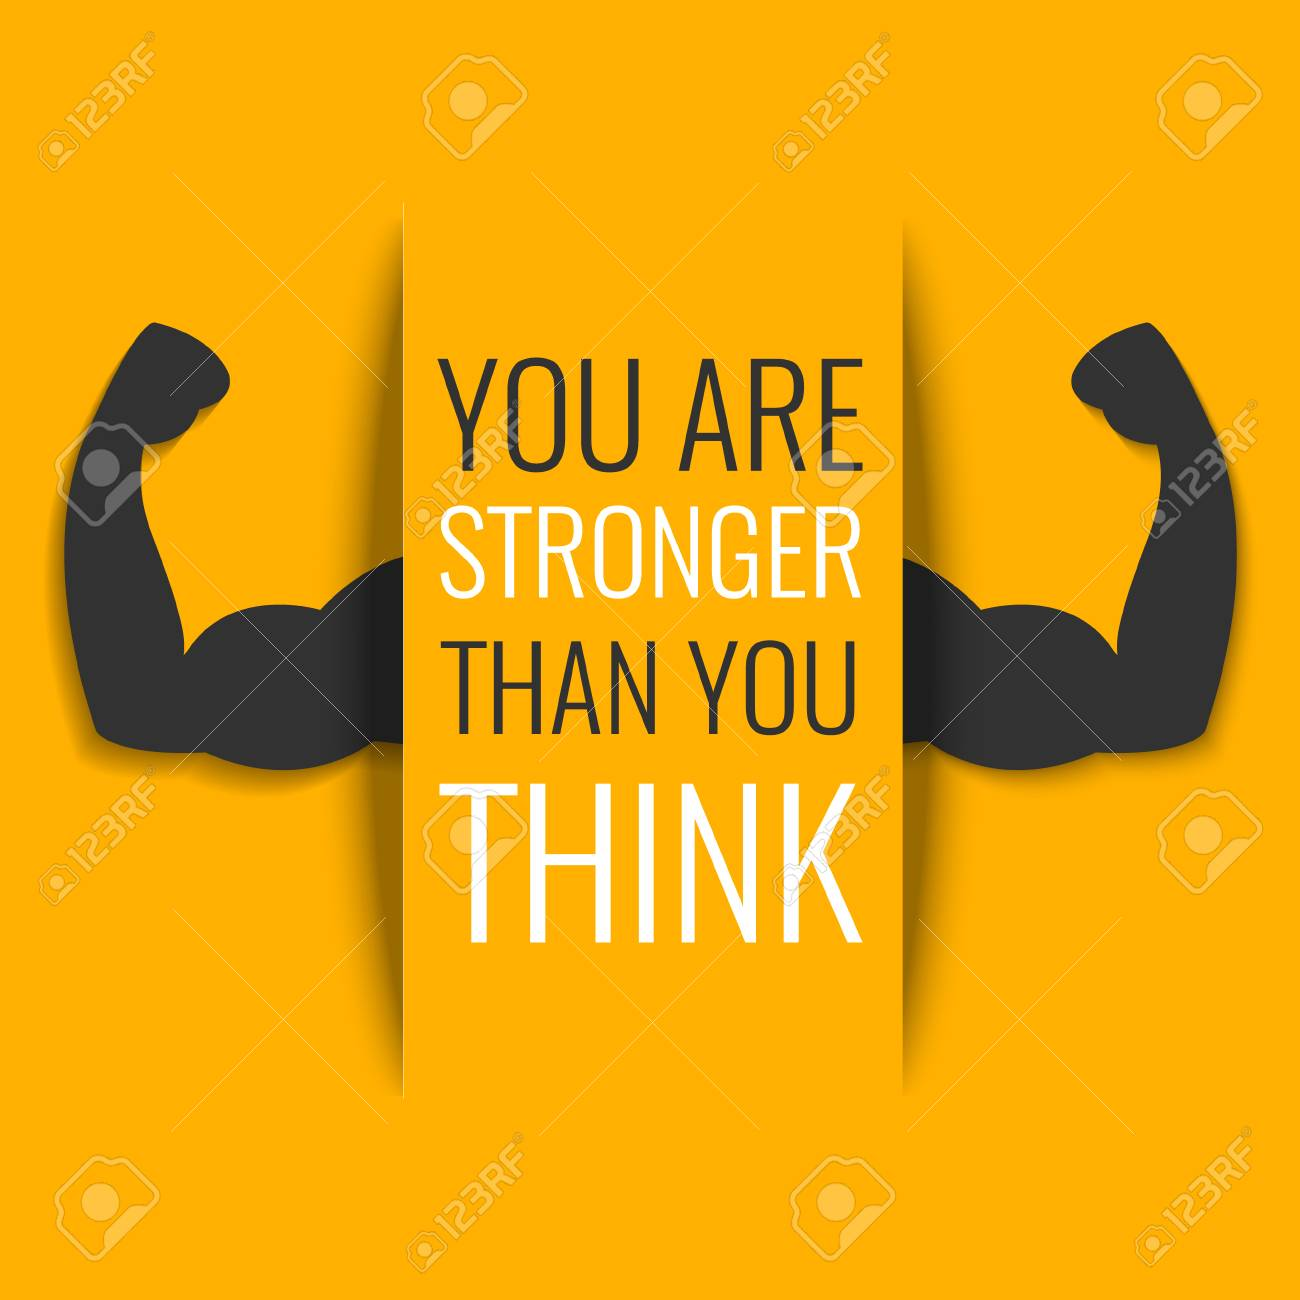 You Are Stronger Than You Think Inspirational Quote On Yellow